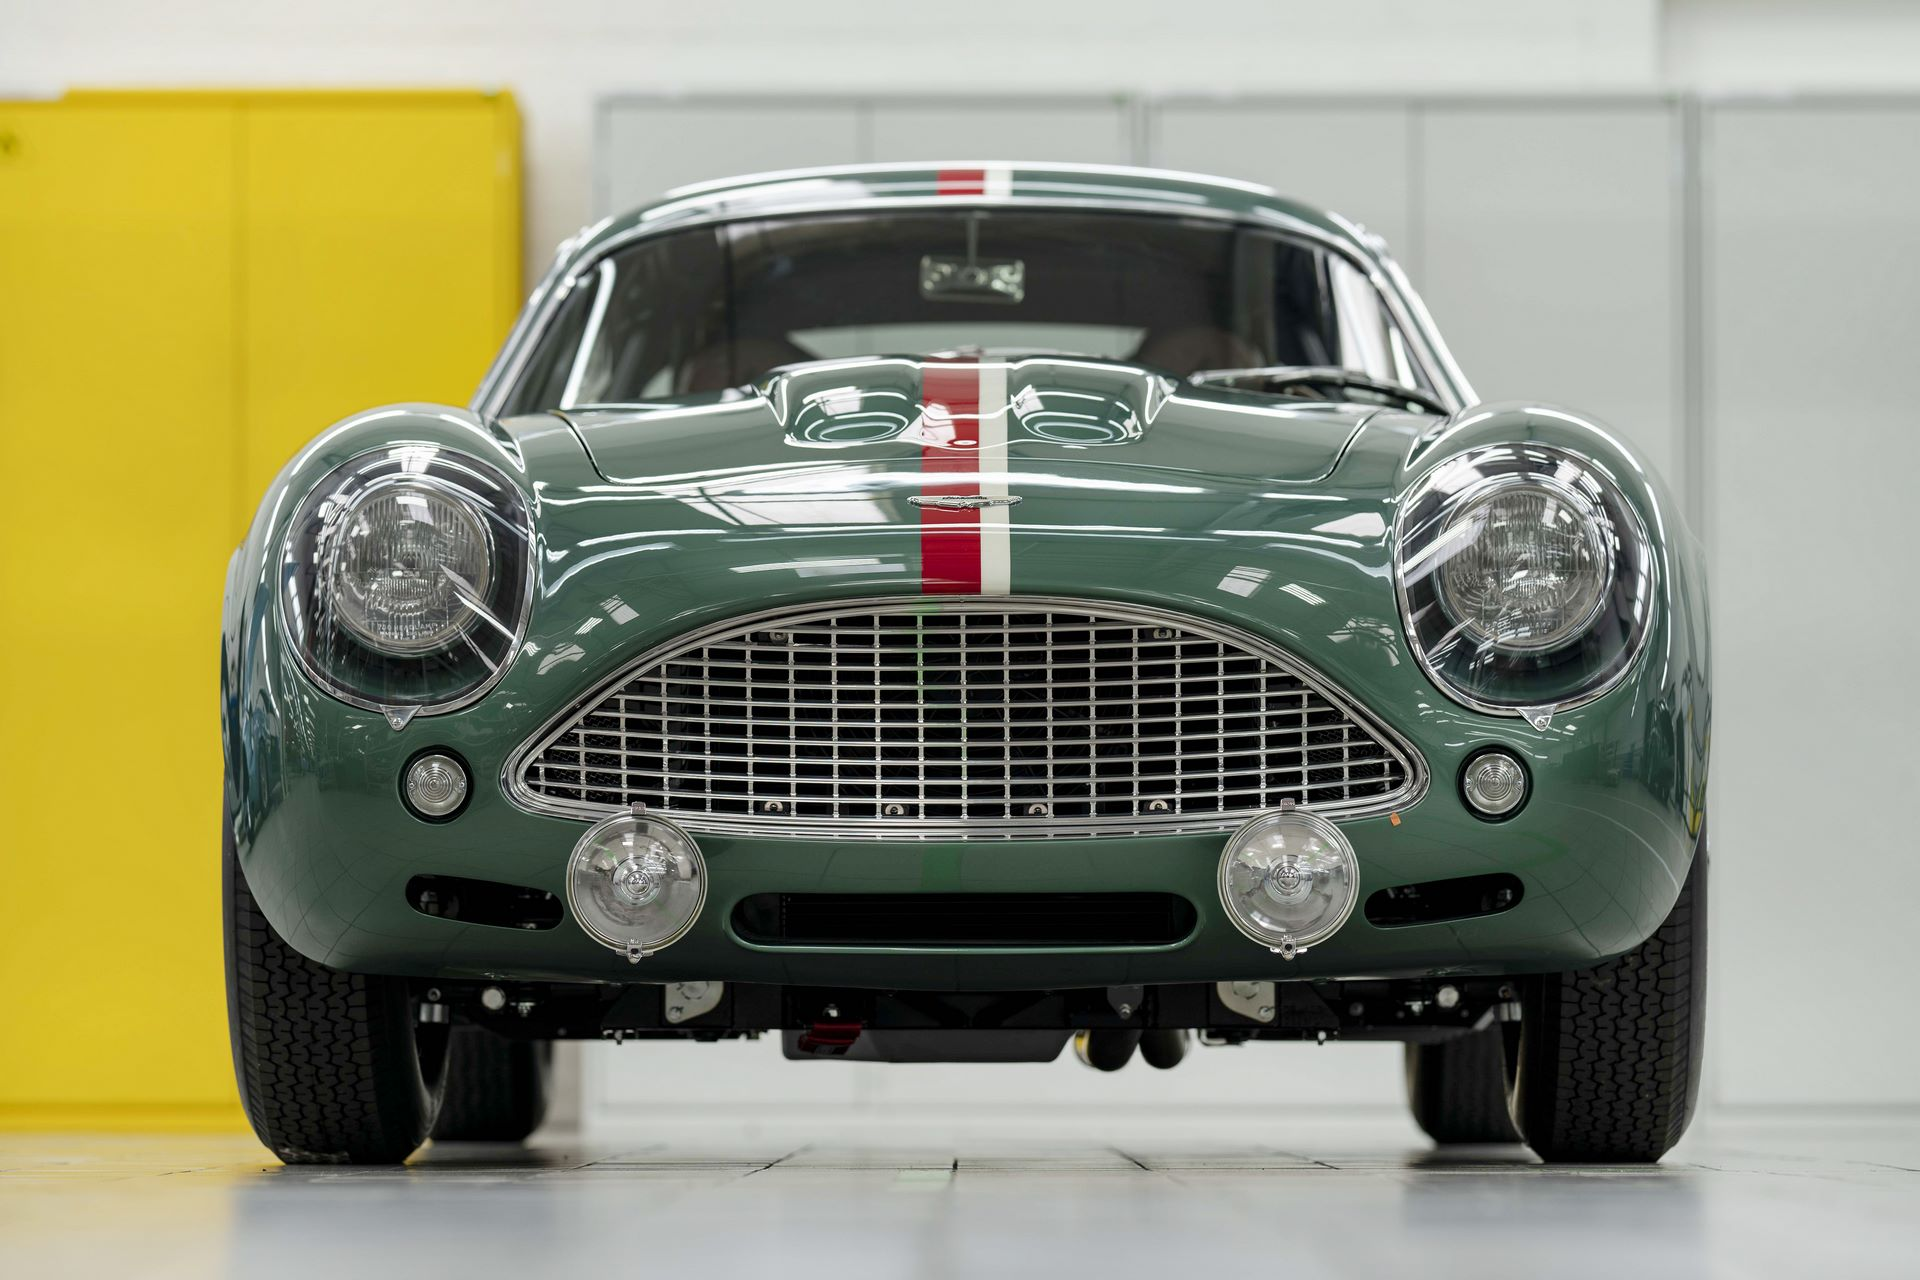 Aston-Martin-DB4-GT-Zagato-Continuation-first-delivery-7